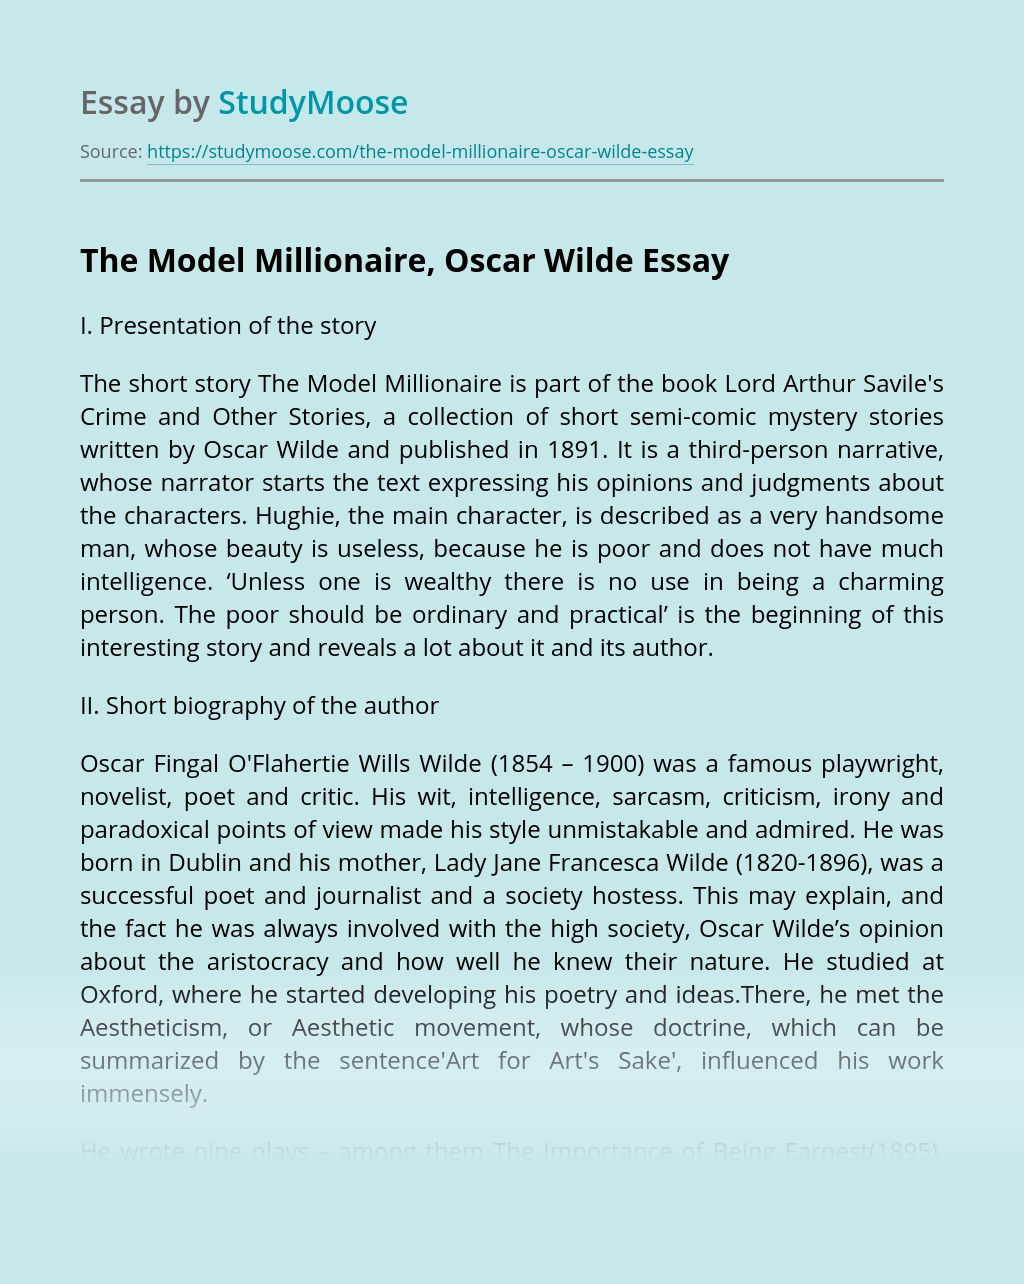 The Model Millionaire, Oscar Wilde